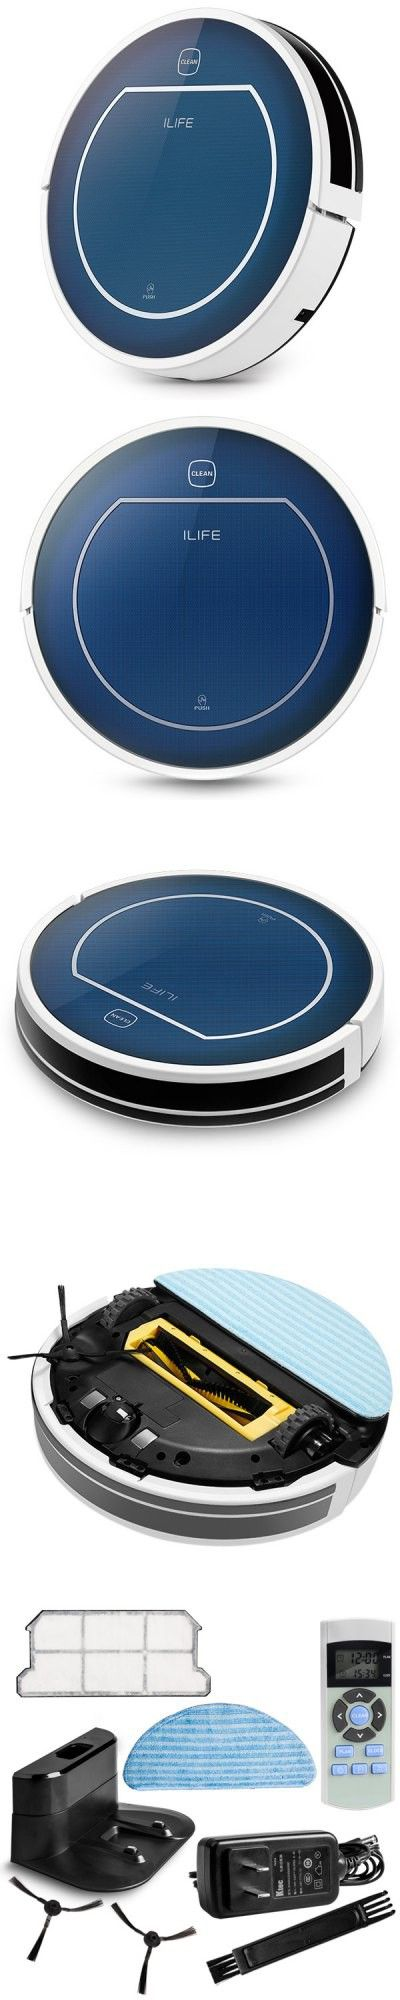 Home Improvement | ILIFE V7 Super Mute Sweeping Robot Home Vacuum Cleaner Dust Cleaning with 2600mAh Li - battery $157.99